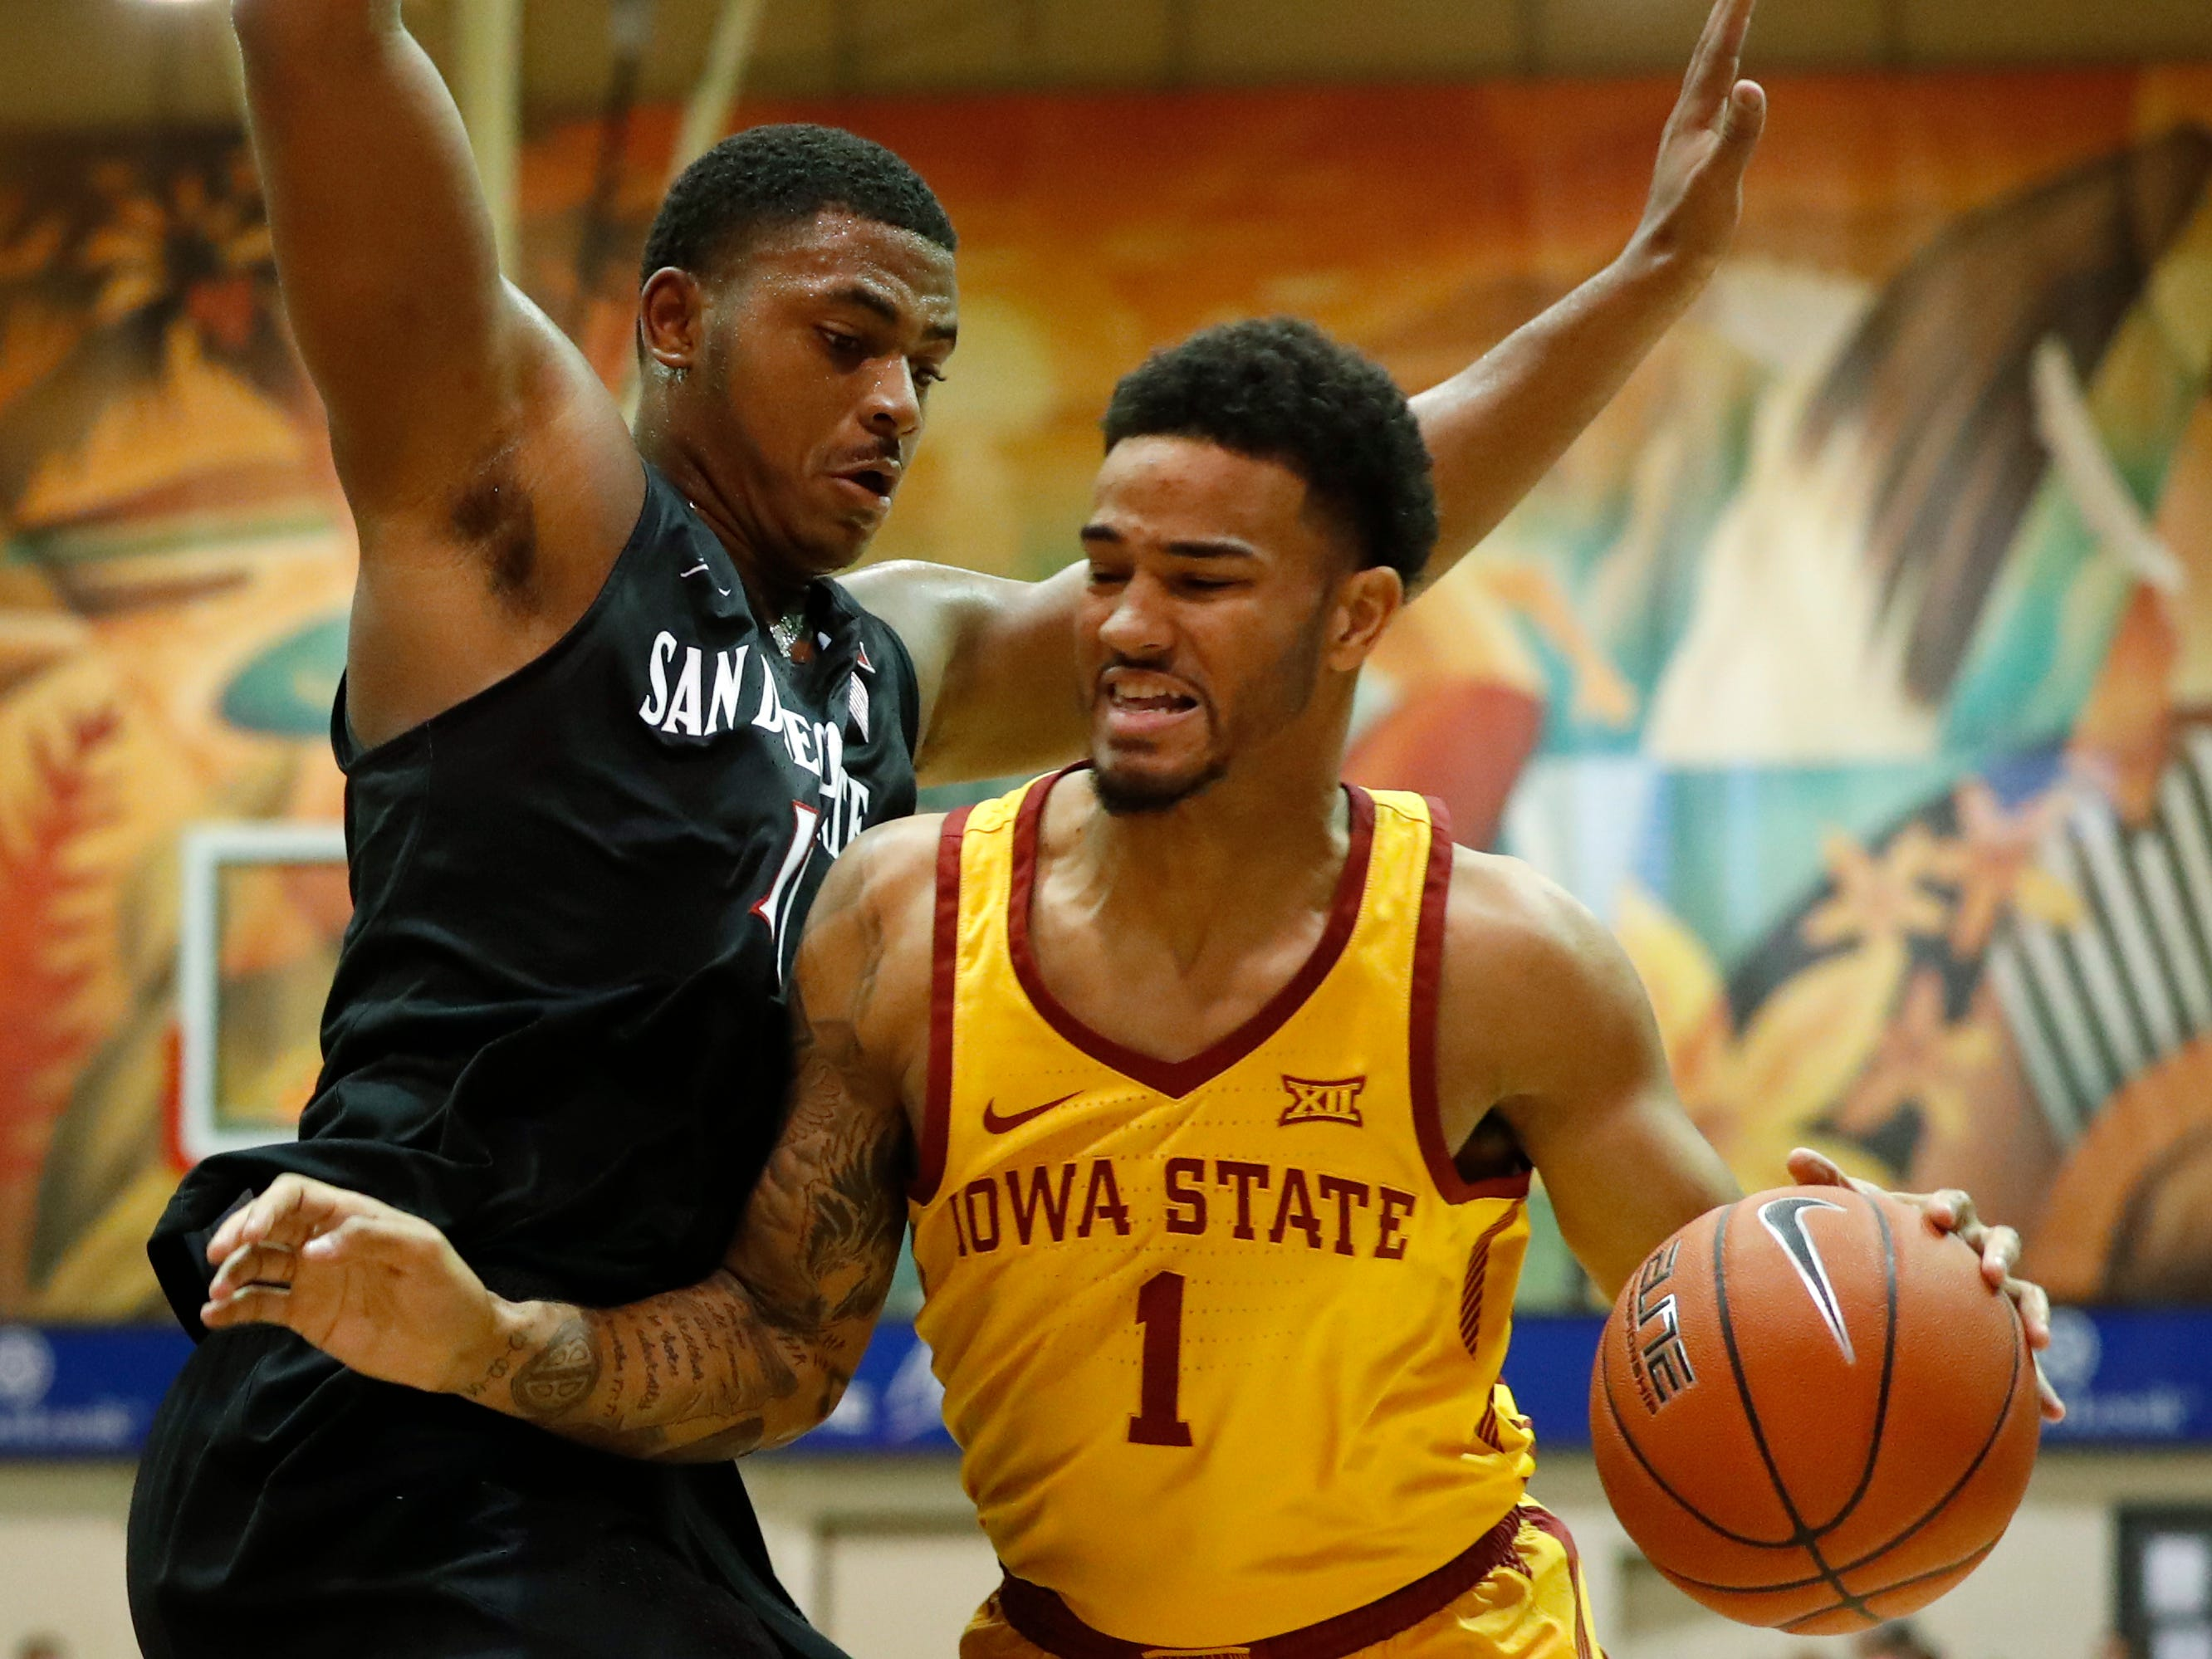 Iowa State guard Nick Weiler-Babb (1) runs into San Diego State forward Matt Mitchell (11) during the first half of a NCAA college basketball game at the Maui Invitational, Wednesday, Nov. 21, 2018, in Lahaina, Hawaii. (AP Photo/Marco Garcia)